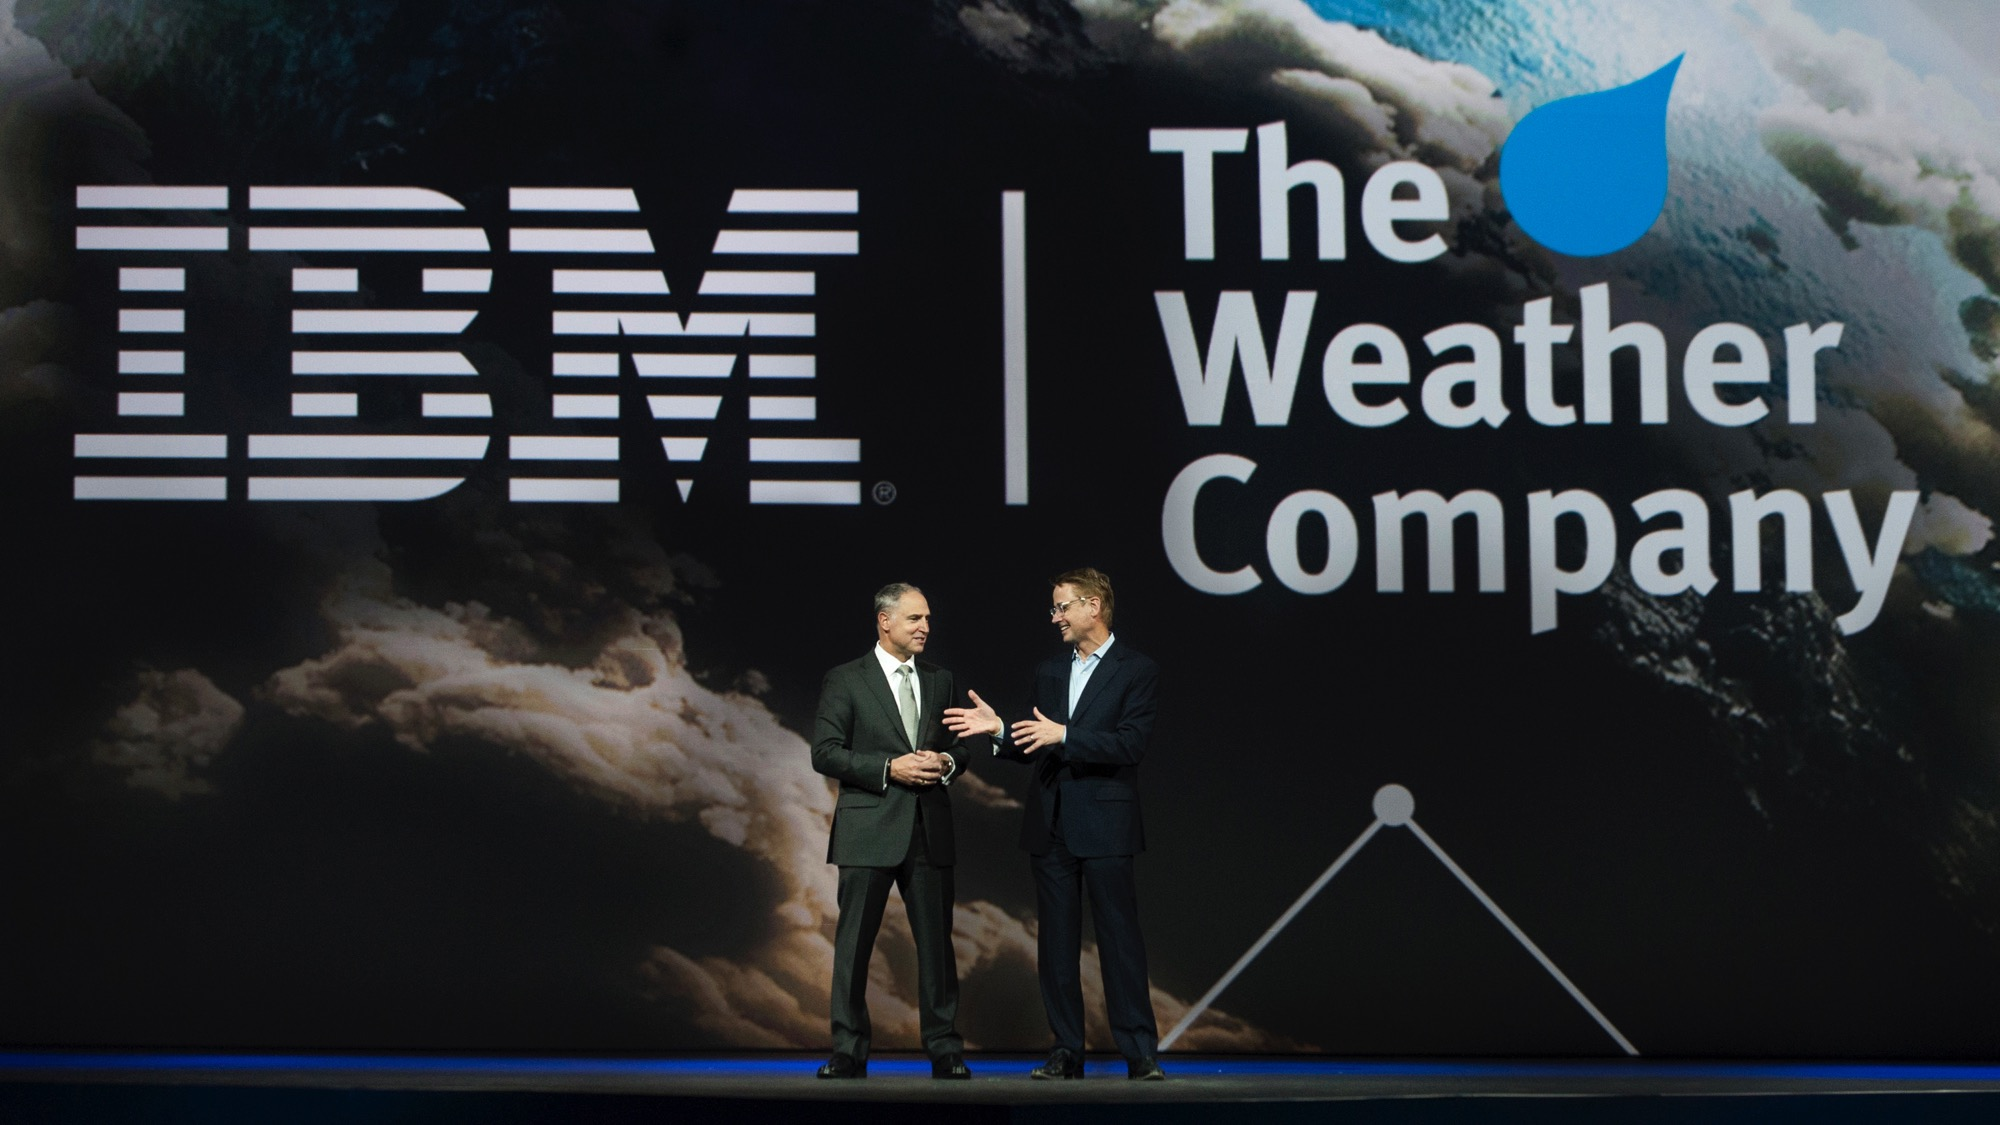 IBM TO ACQUIRE THE WEATHER COMPANY'S PRODUCT AND TECNOLOGY BUSINESSES